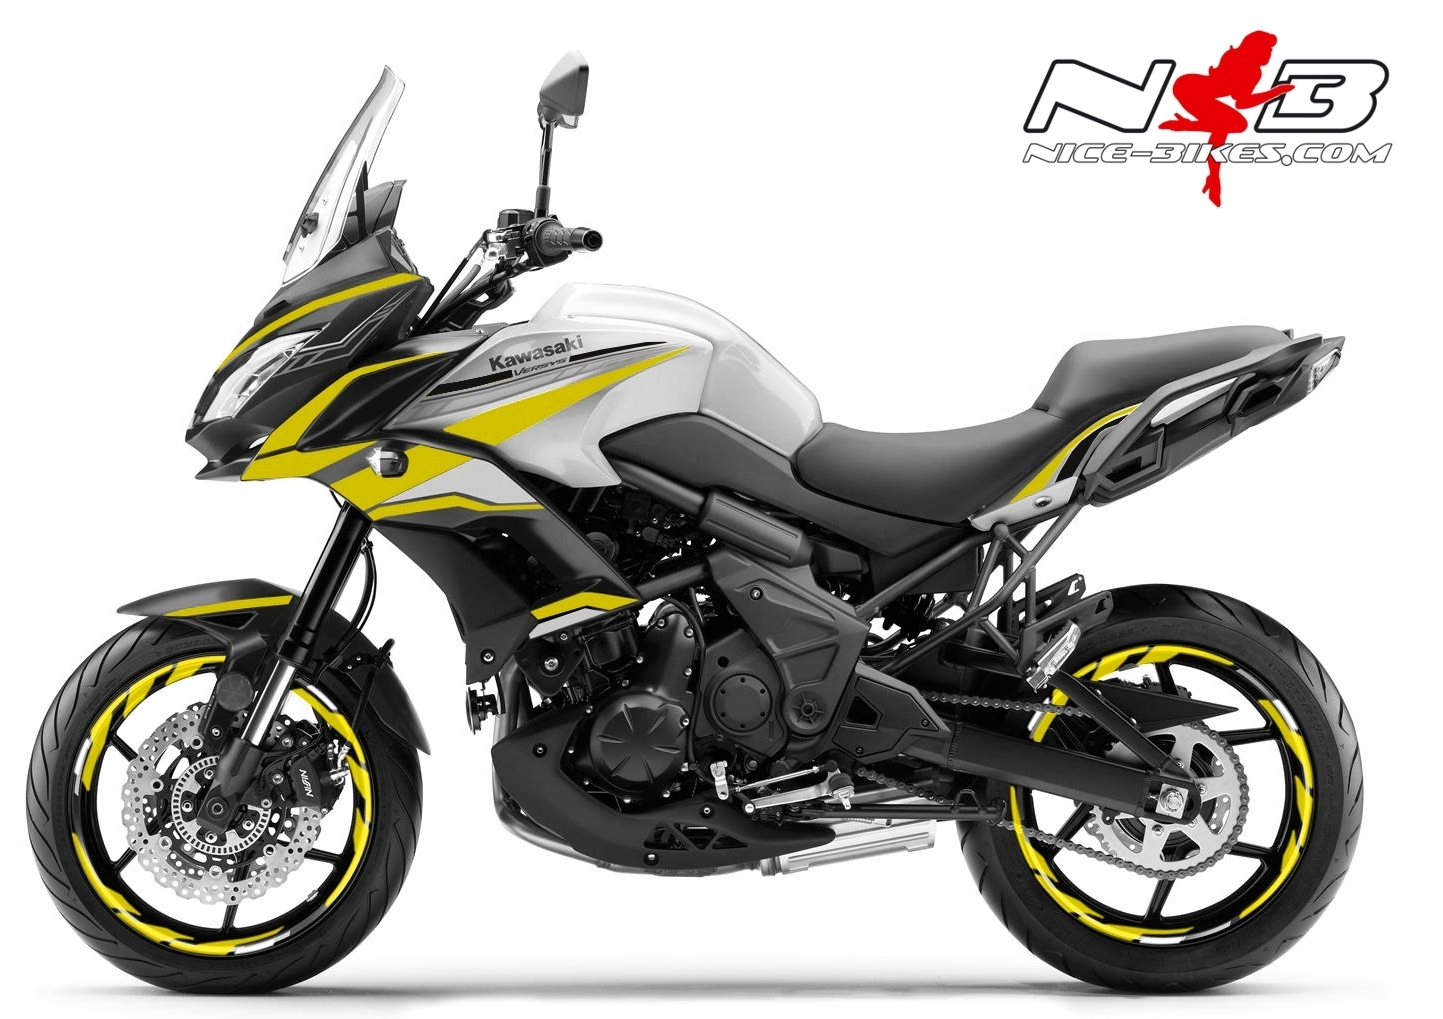 Foliendesign Kawasaki Versys 650 Bj. 2020 Hornet Yellow